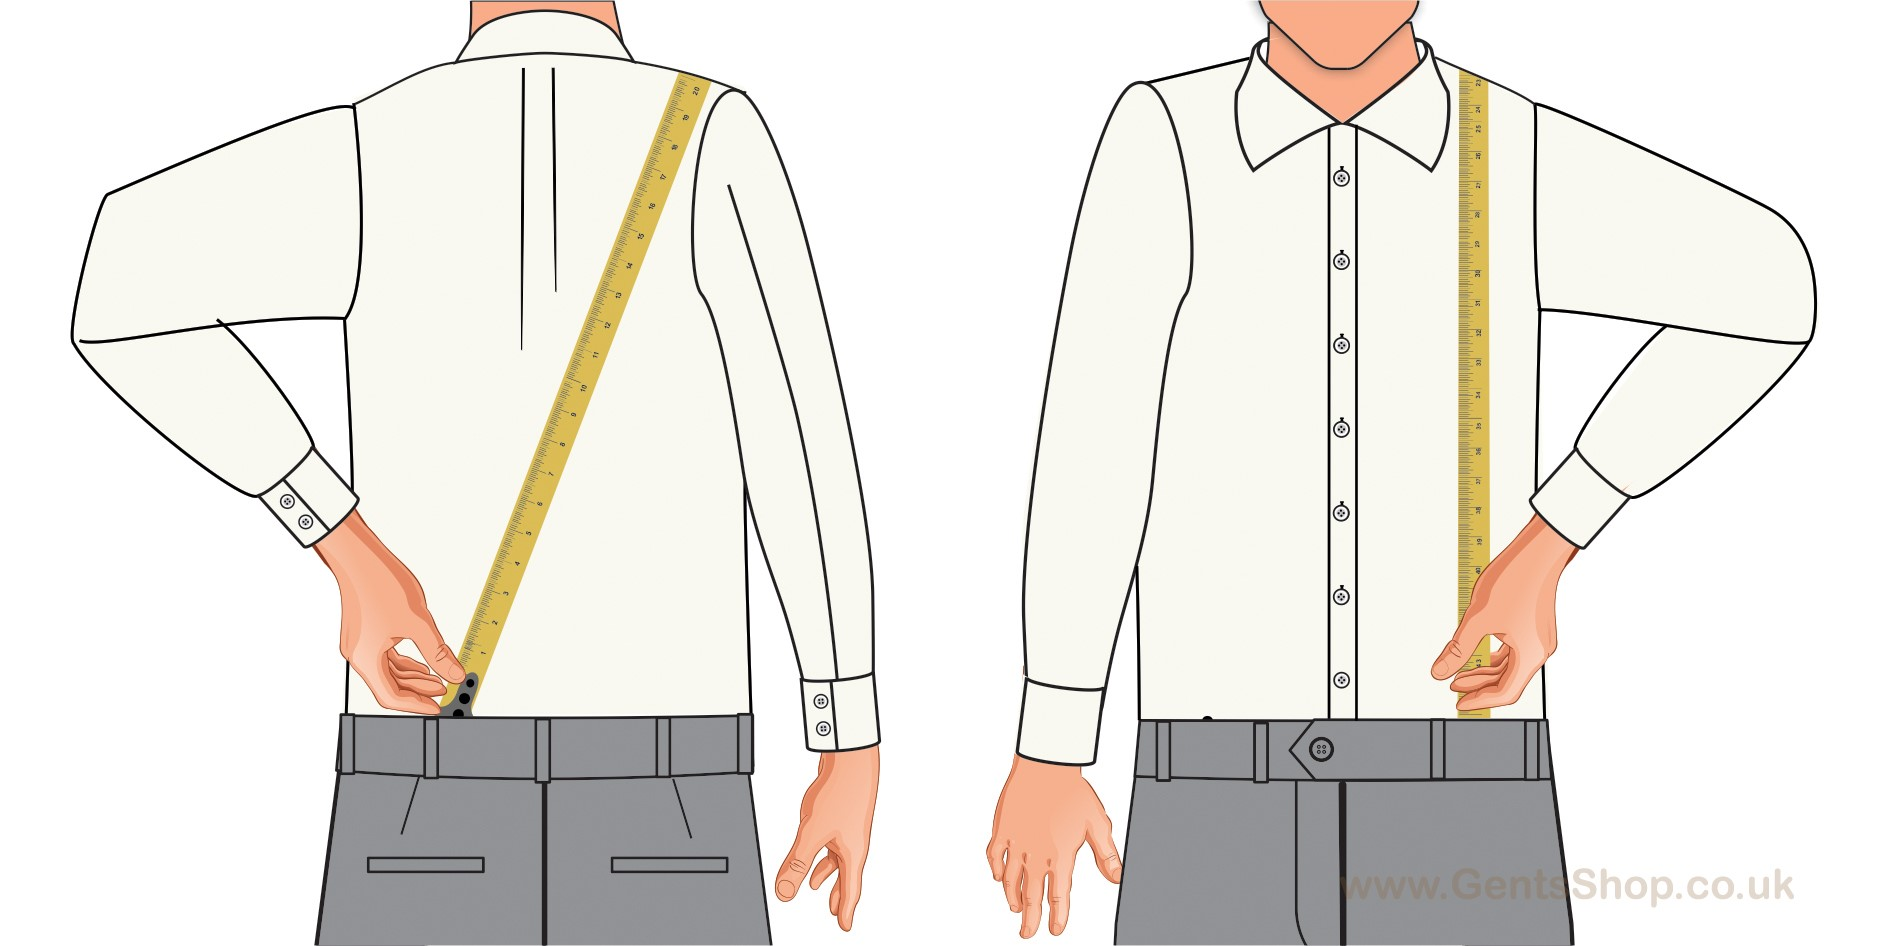 How to measure to ensure the correct size of trouser braces or suspenders for trousers.